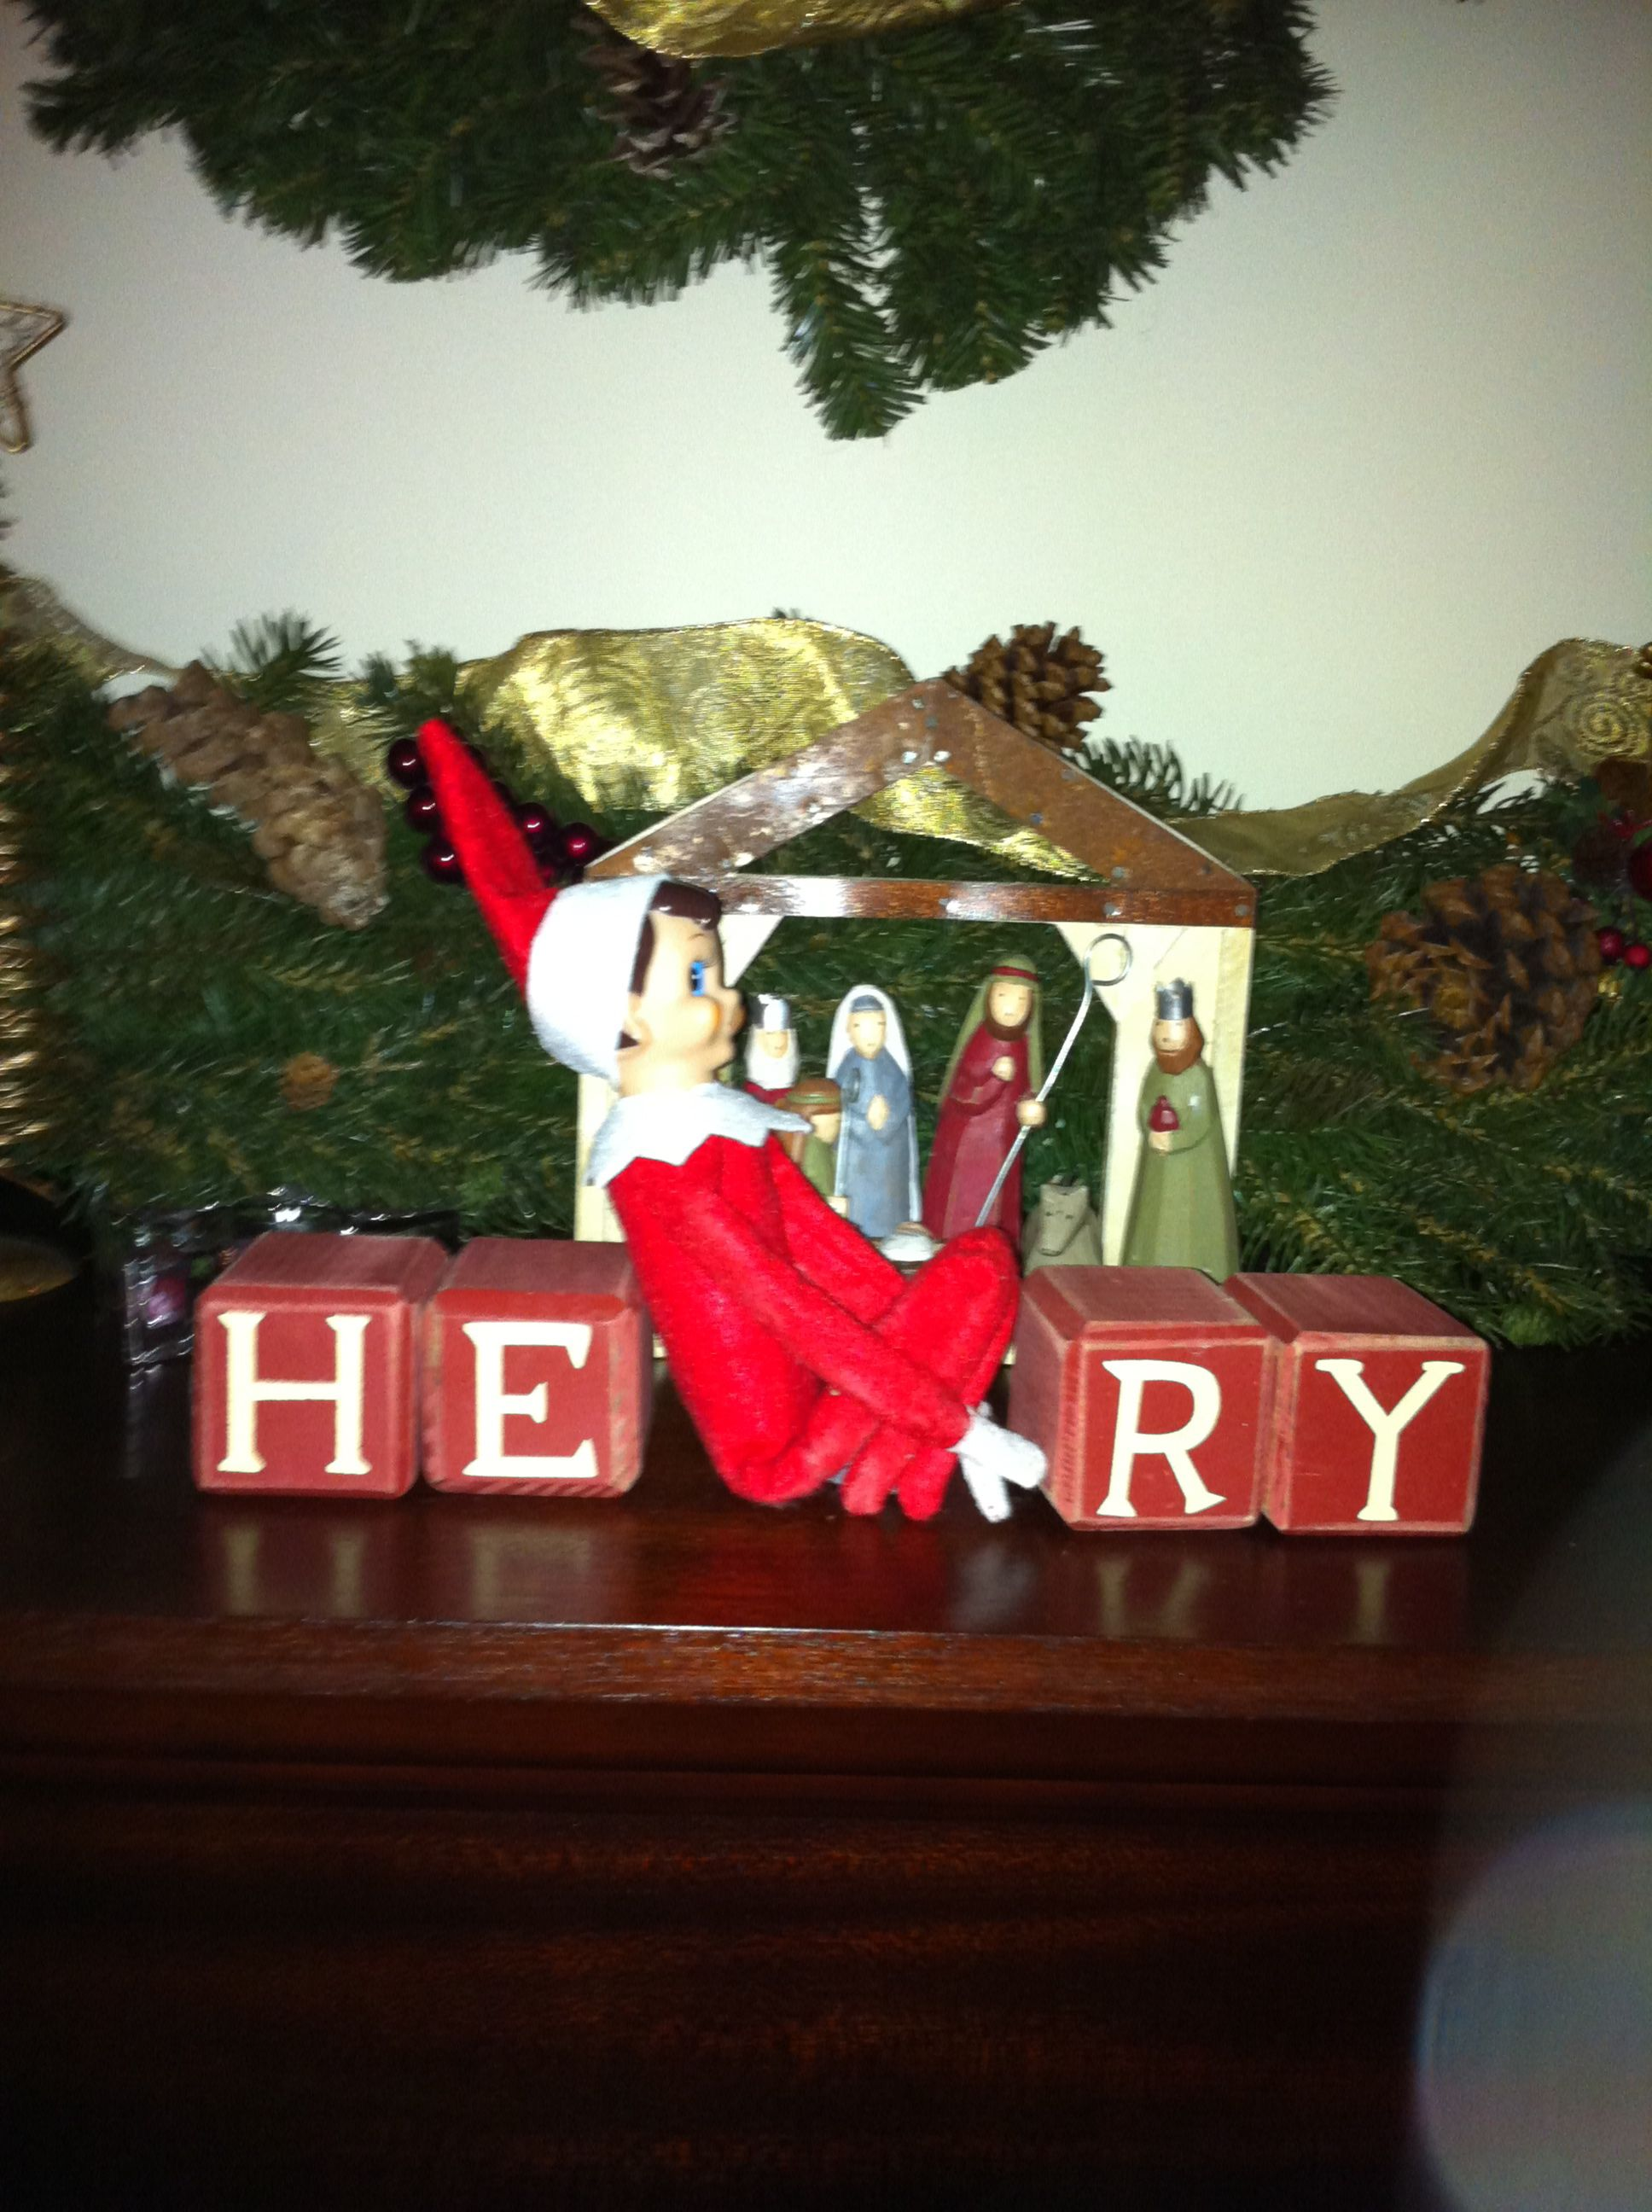 He can spell! We have blocks that spell Merry Christmas but Henry thought it was all about him.